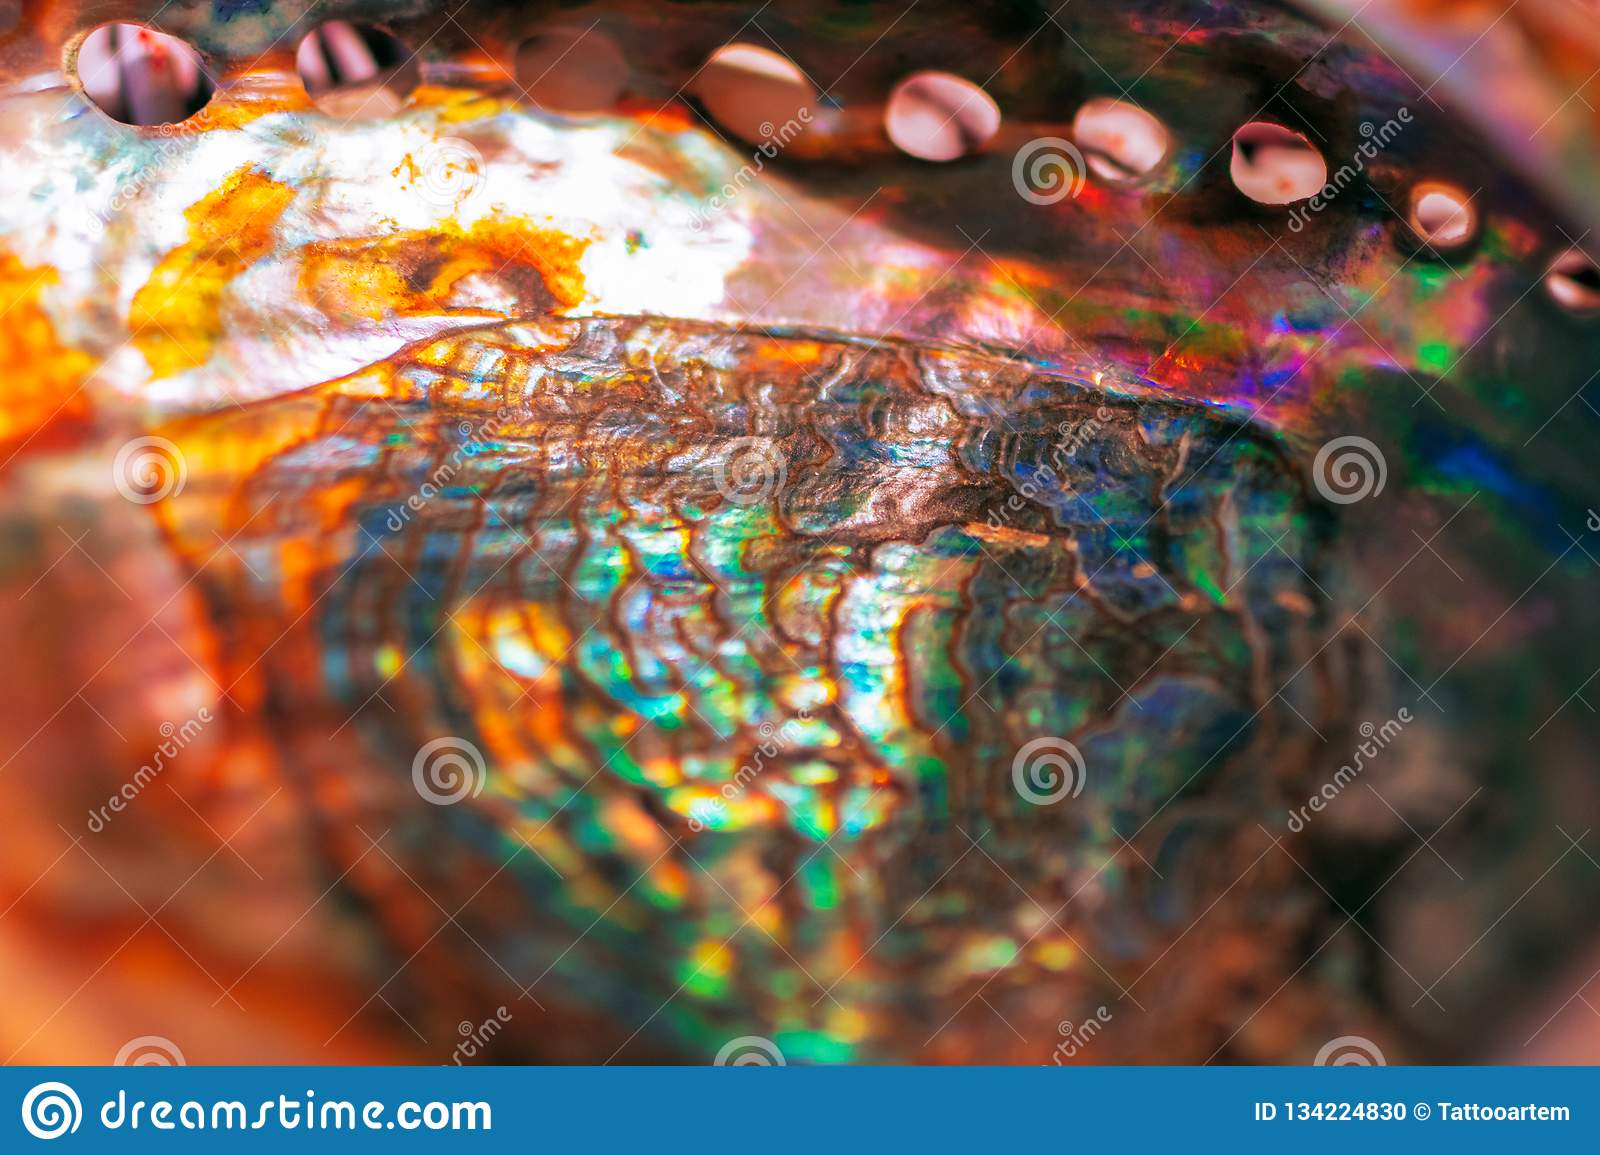 Close-up of mother of pearl. Multicolor texture of seashell, multicolor nacre texture. Colored nacre background